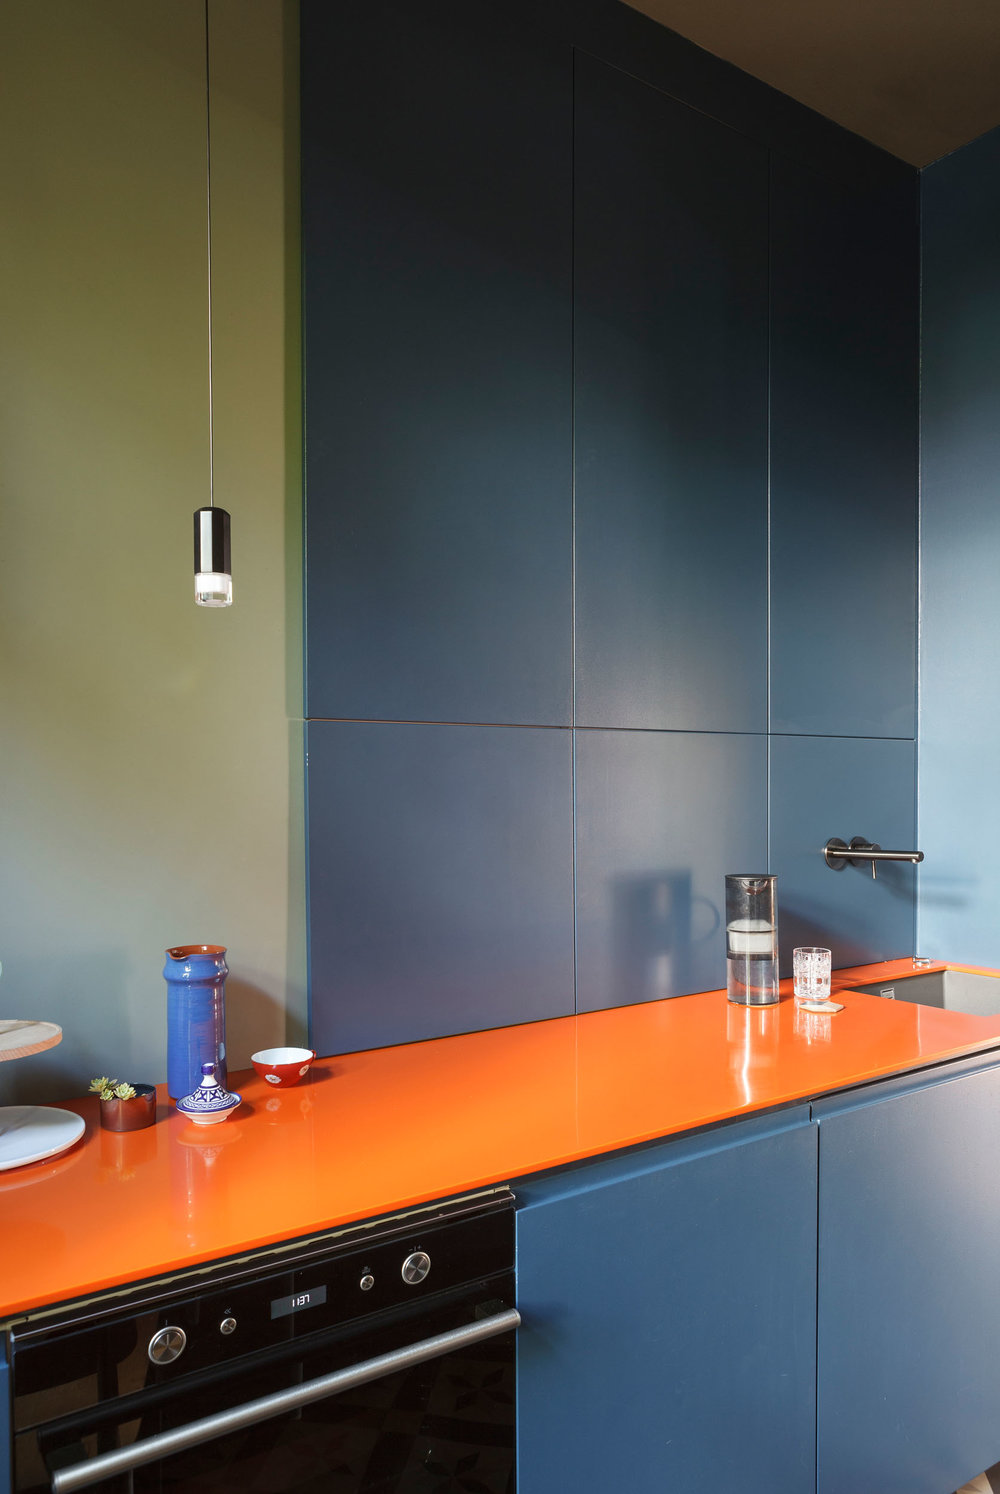 Kitchen-HP-STUDIOOINK-72DPI-9797.jpg